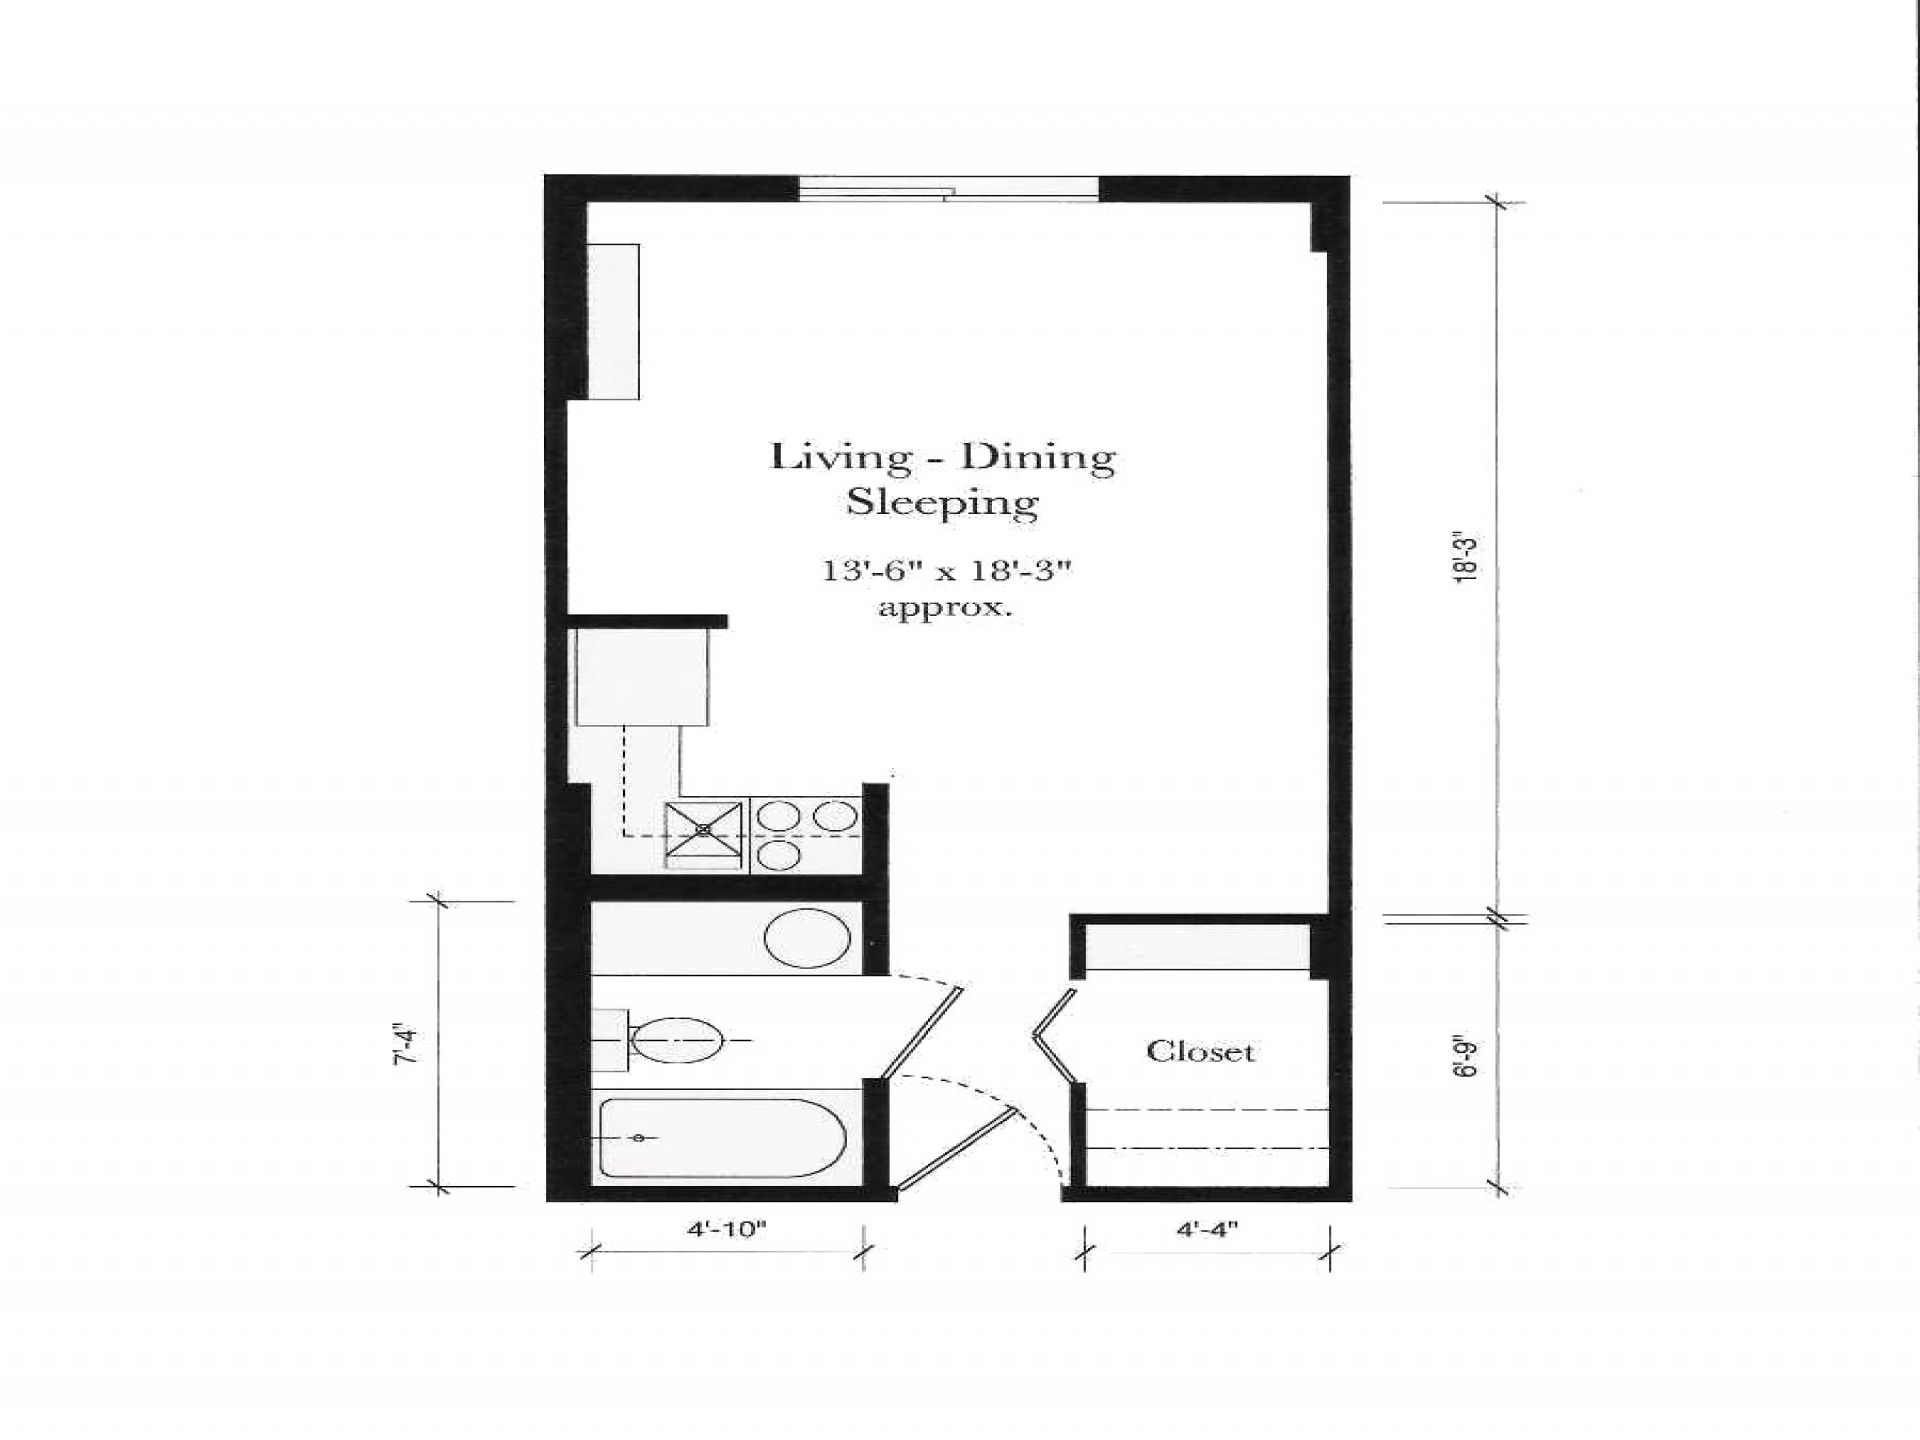 apartment studio floor plan simple floor design studio apartment floor s 350 sq ft - 350 Sq Ft Floor Plan